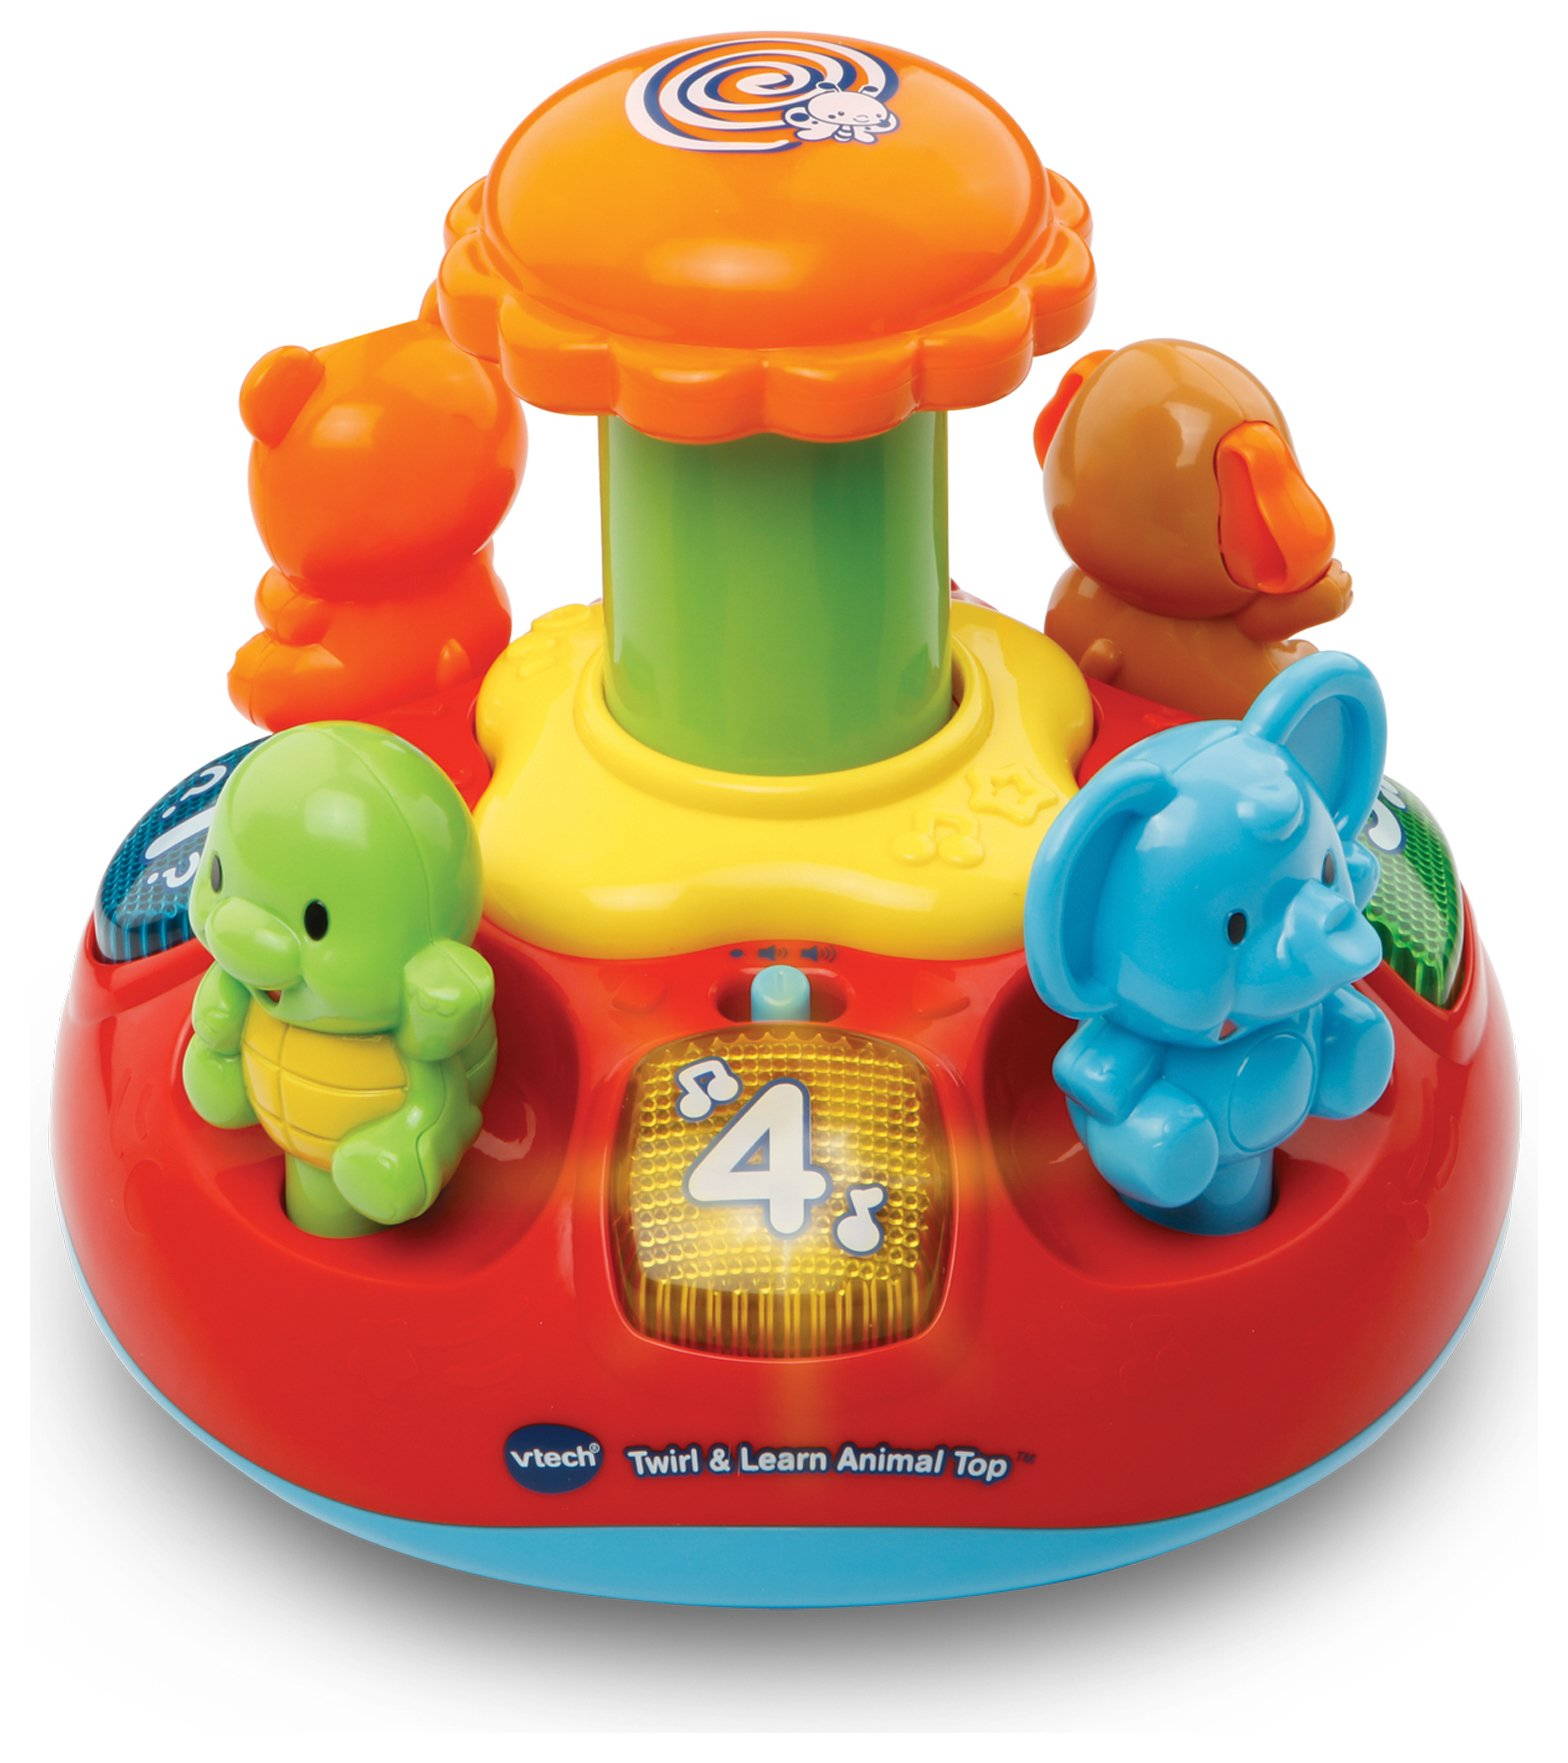 VTech - Push and Play Spinning Top from Vtech